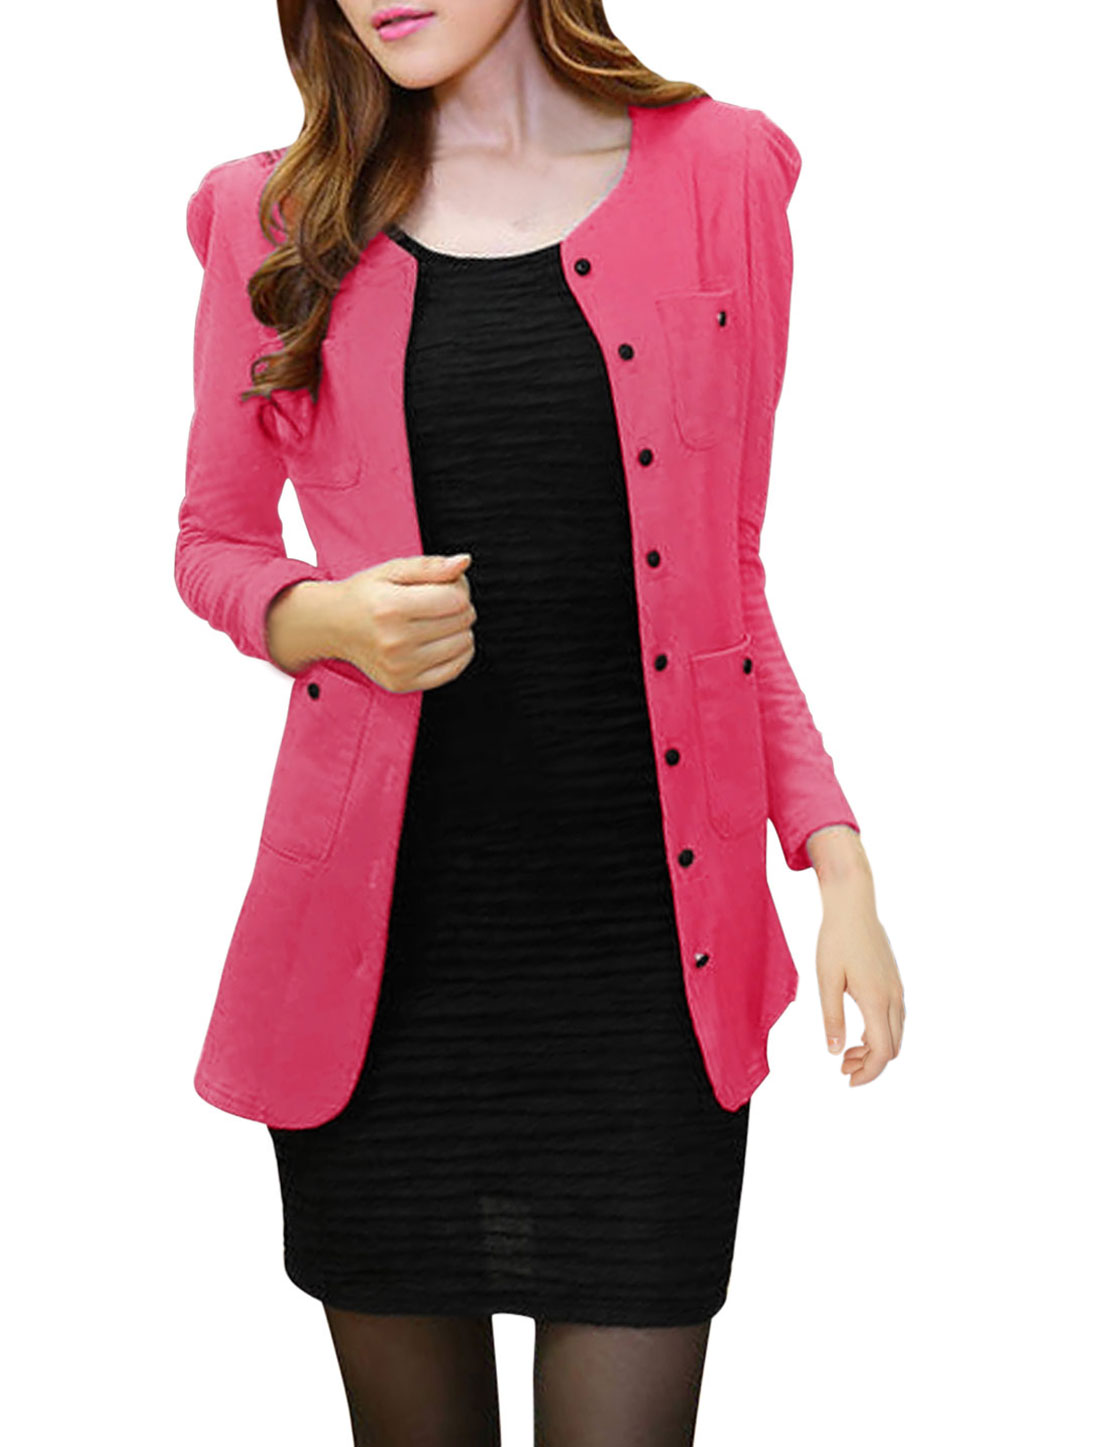 Lady Long Sleeve Two Chest Pockets Single Breasted Cardigan Fuchsia M